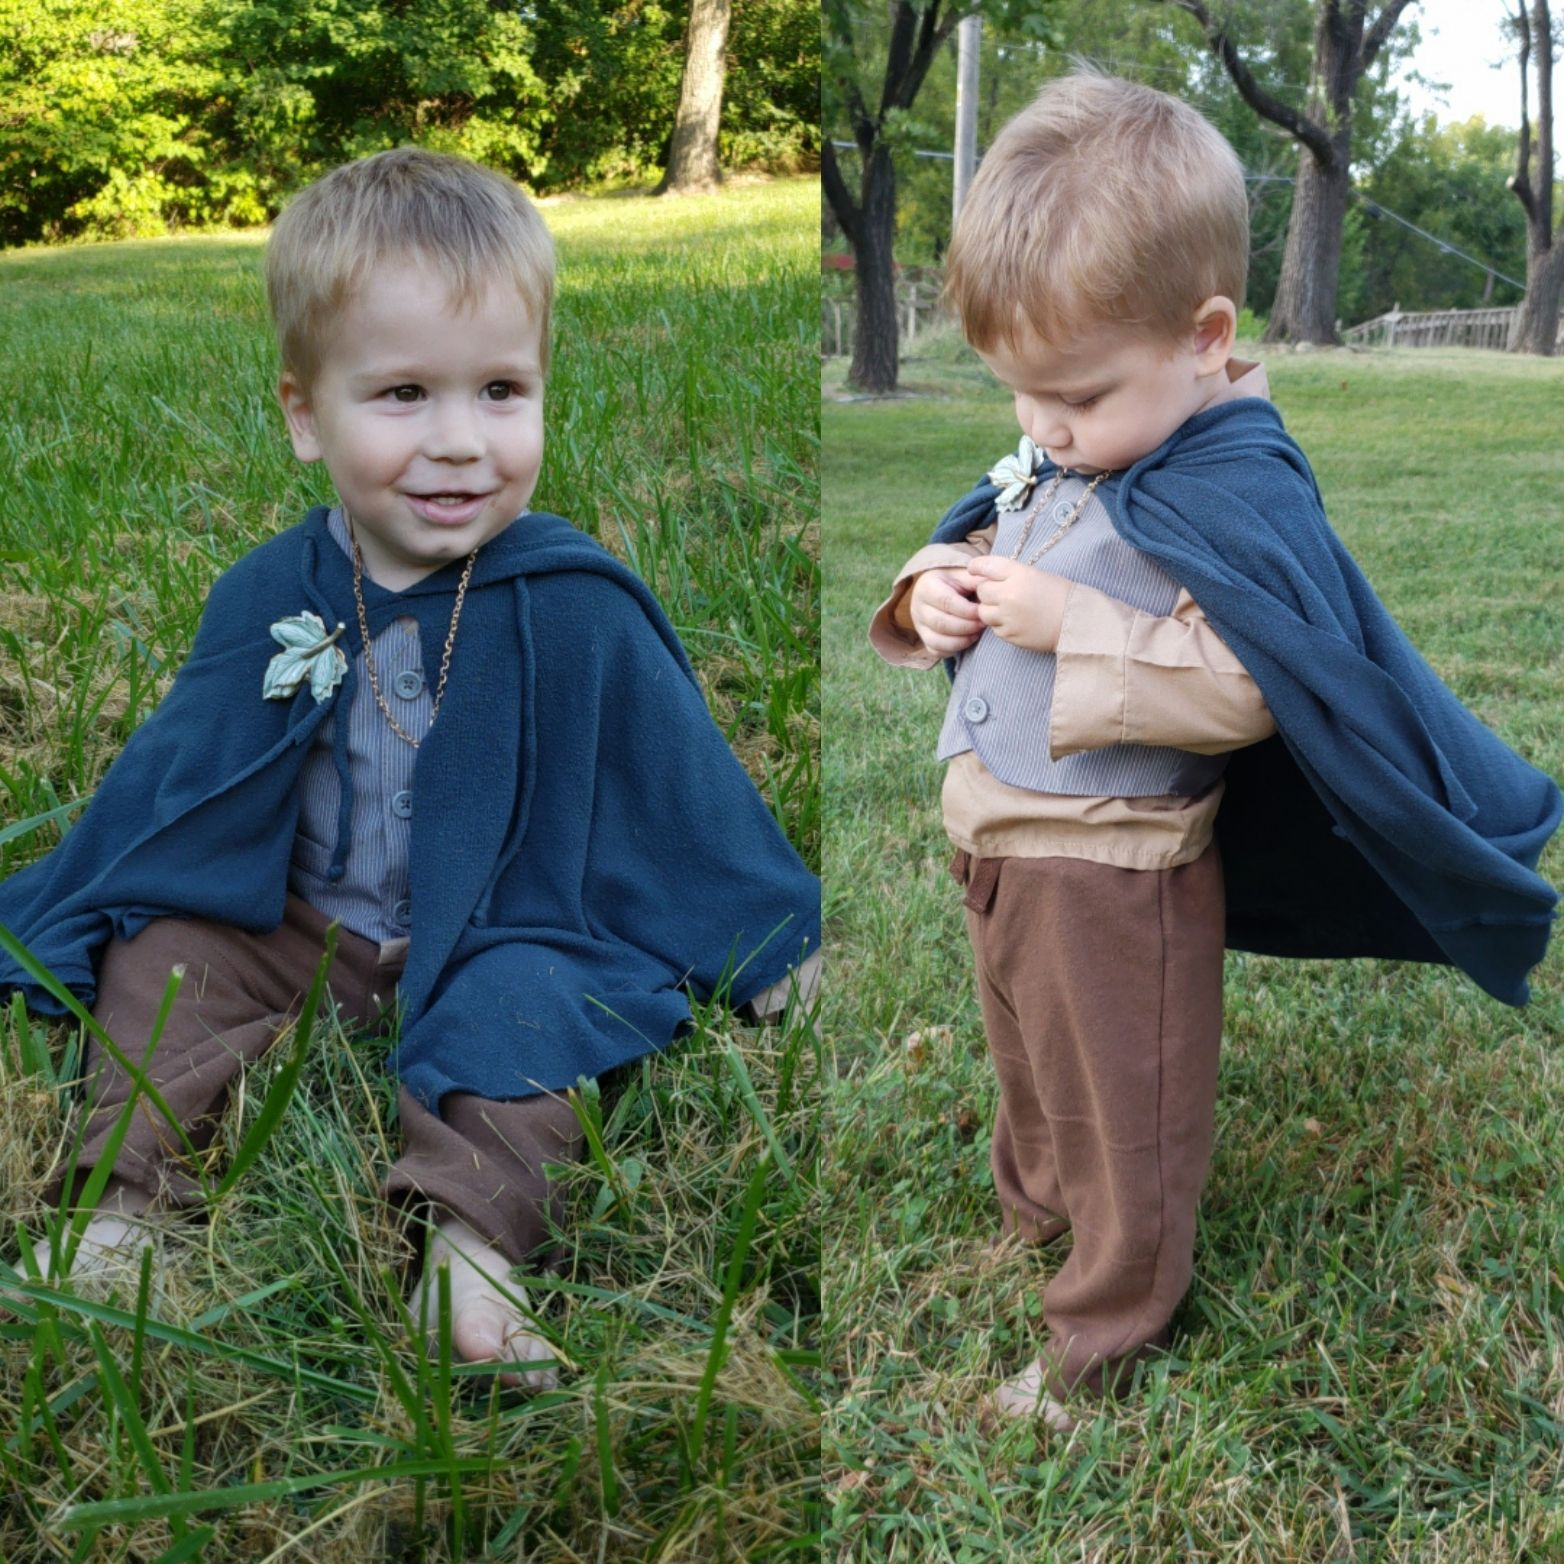 My son is going to be Frodo Baggins for Halloween